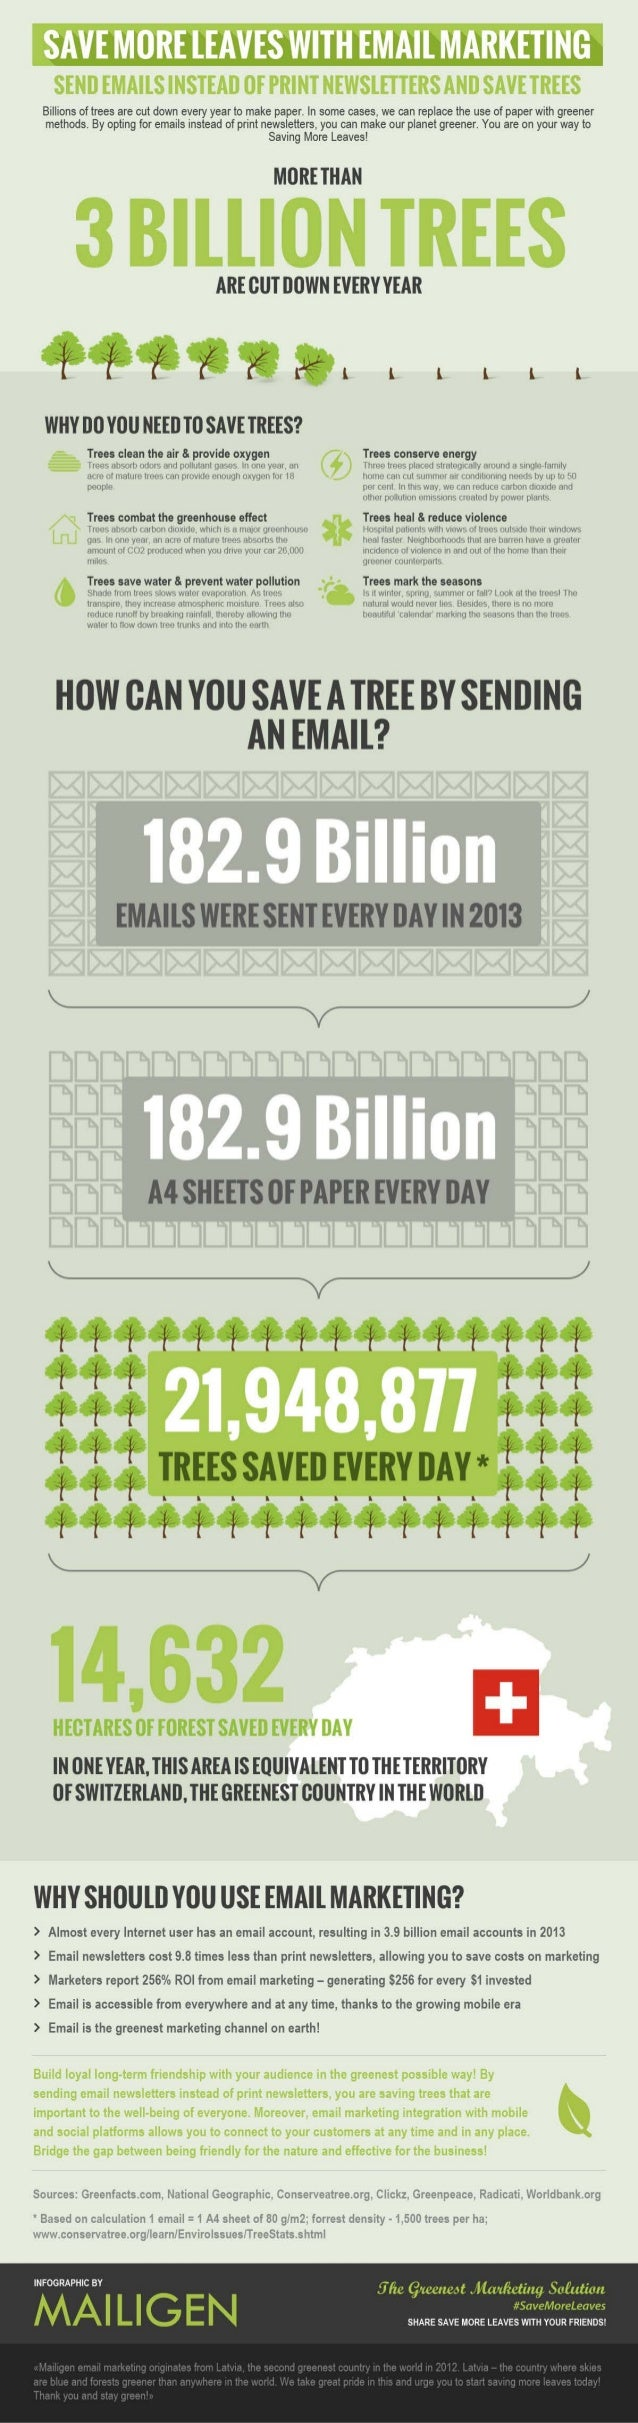 Mailigen save more leaves with email marketing infographic